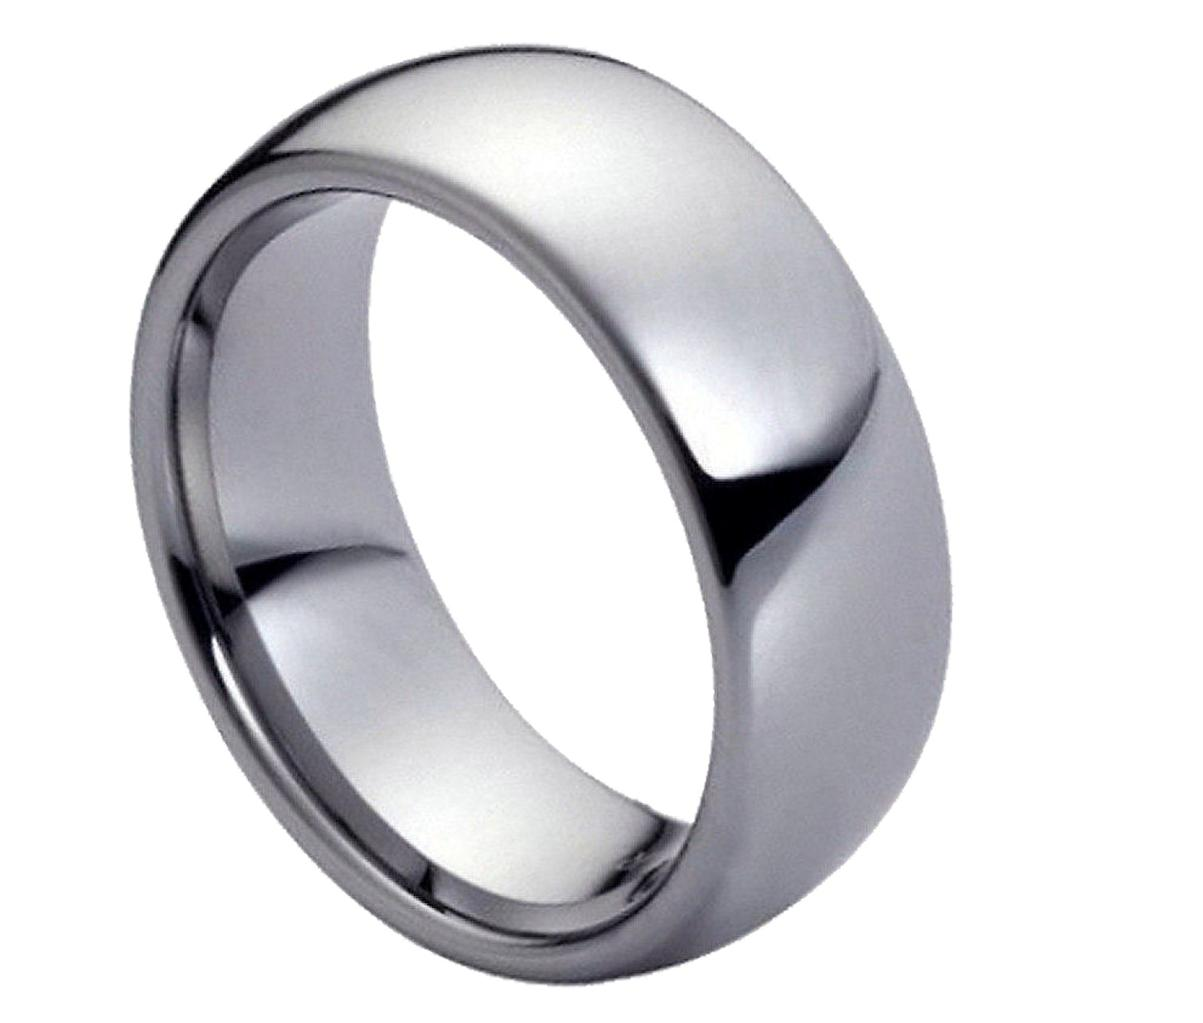 tungsten carbide wedding bands Black Tungsten Carbide Wedding Band Ring Mens Jewelry